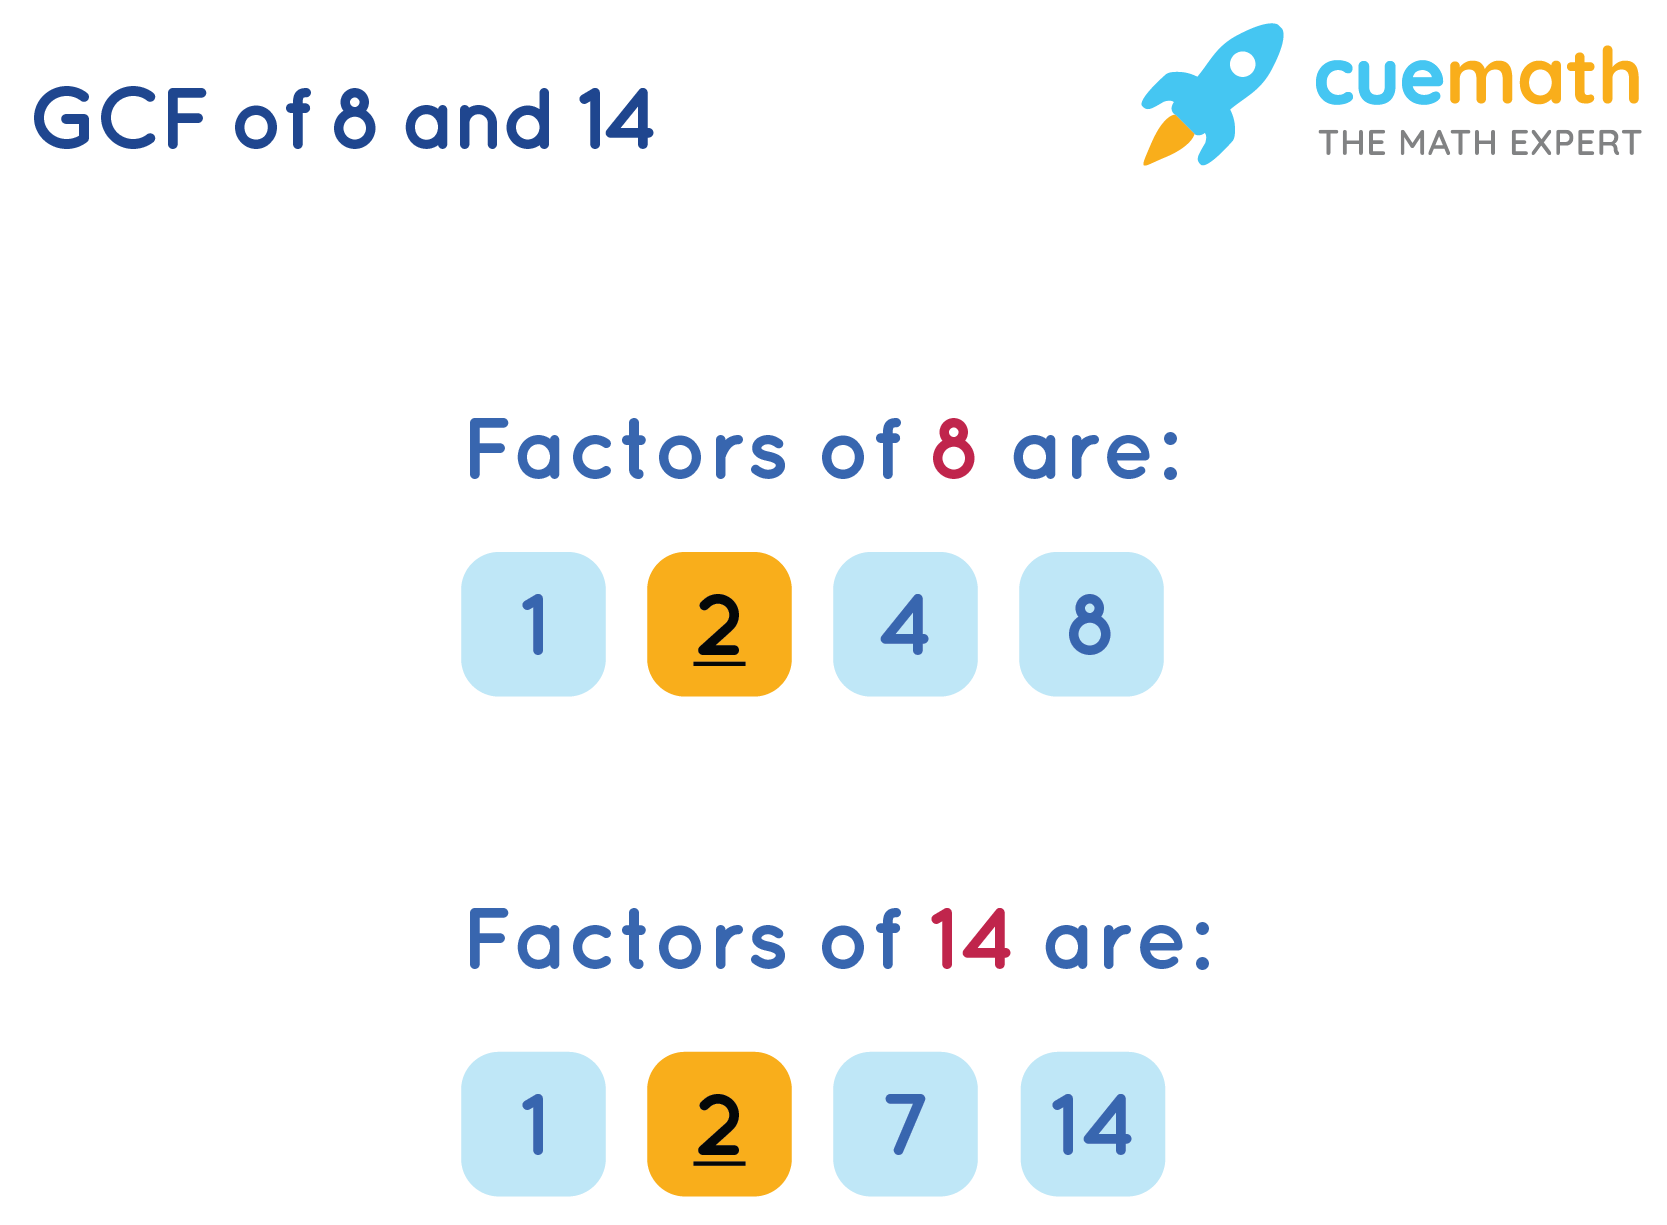 GCF of 8 and 14 by Listing the Common Factors